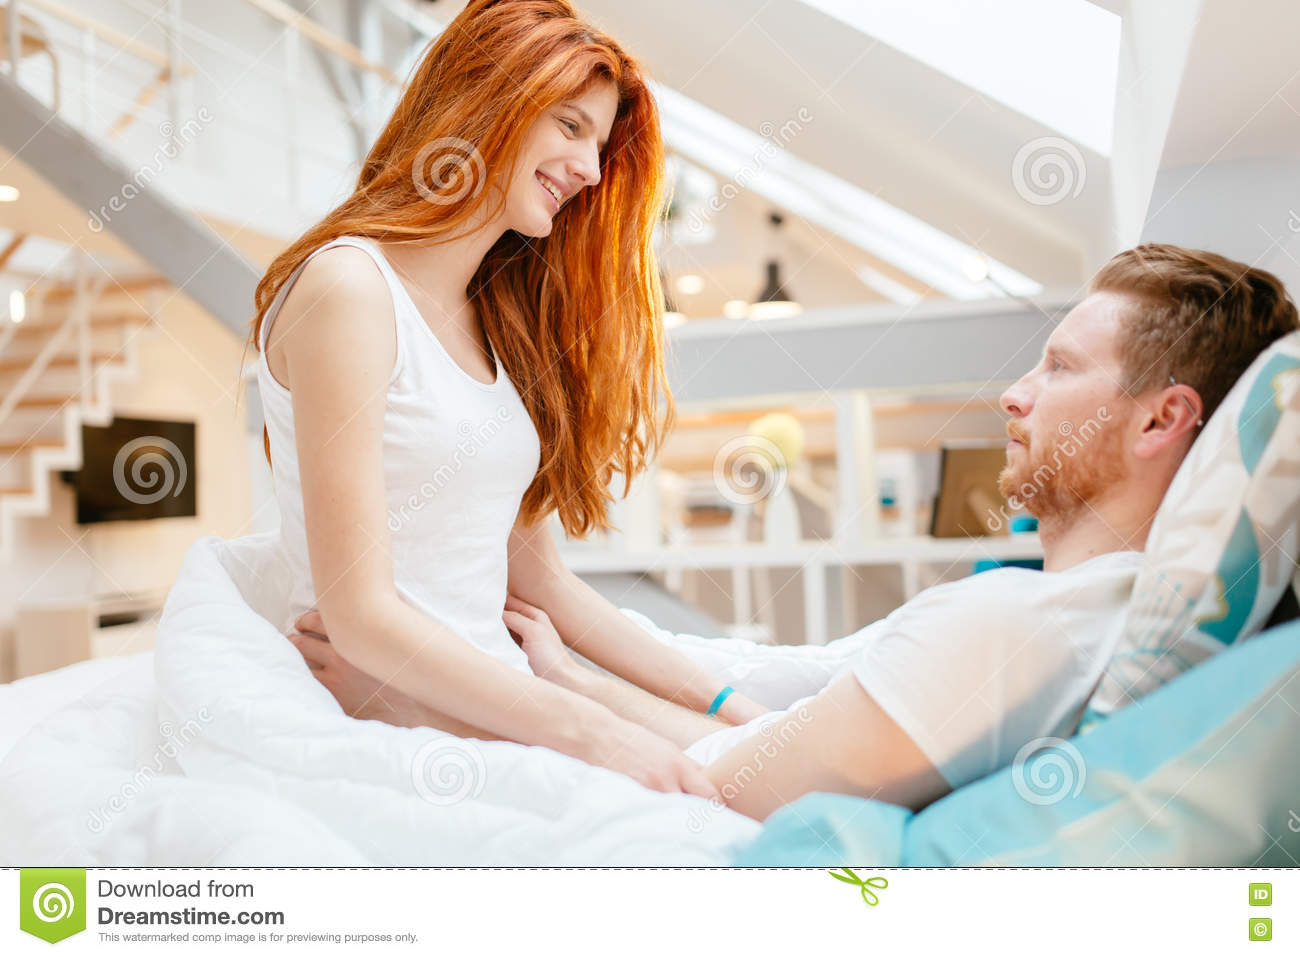 Royalty Free Stock Photo  Download Beautiful Couple Romance In Bed. Beautiful Couple Romance In Bed Stock Photo   Image  69871375